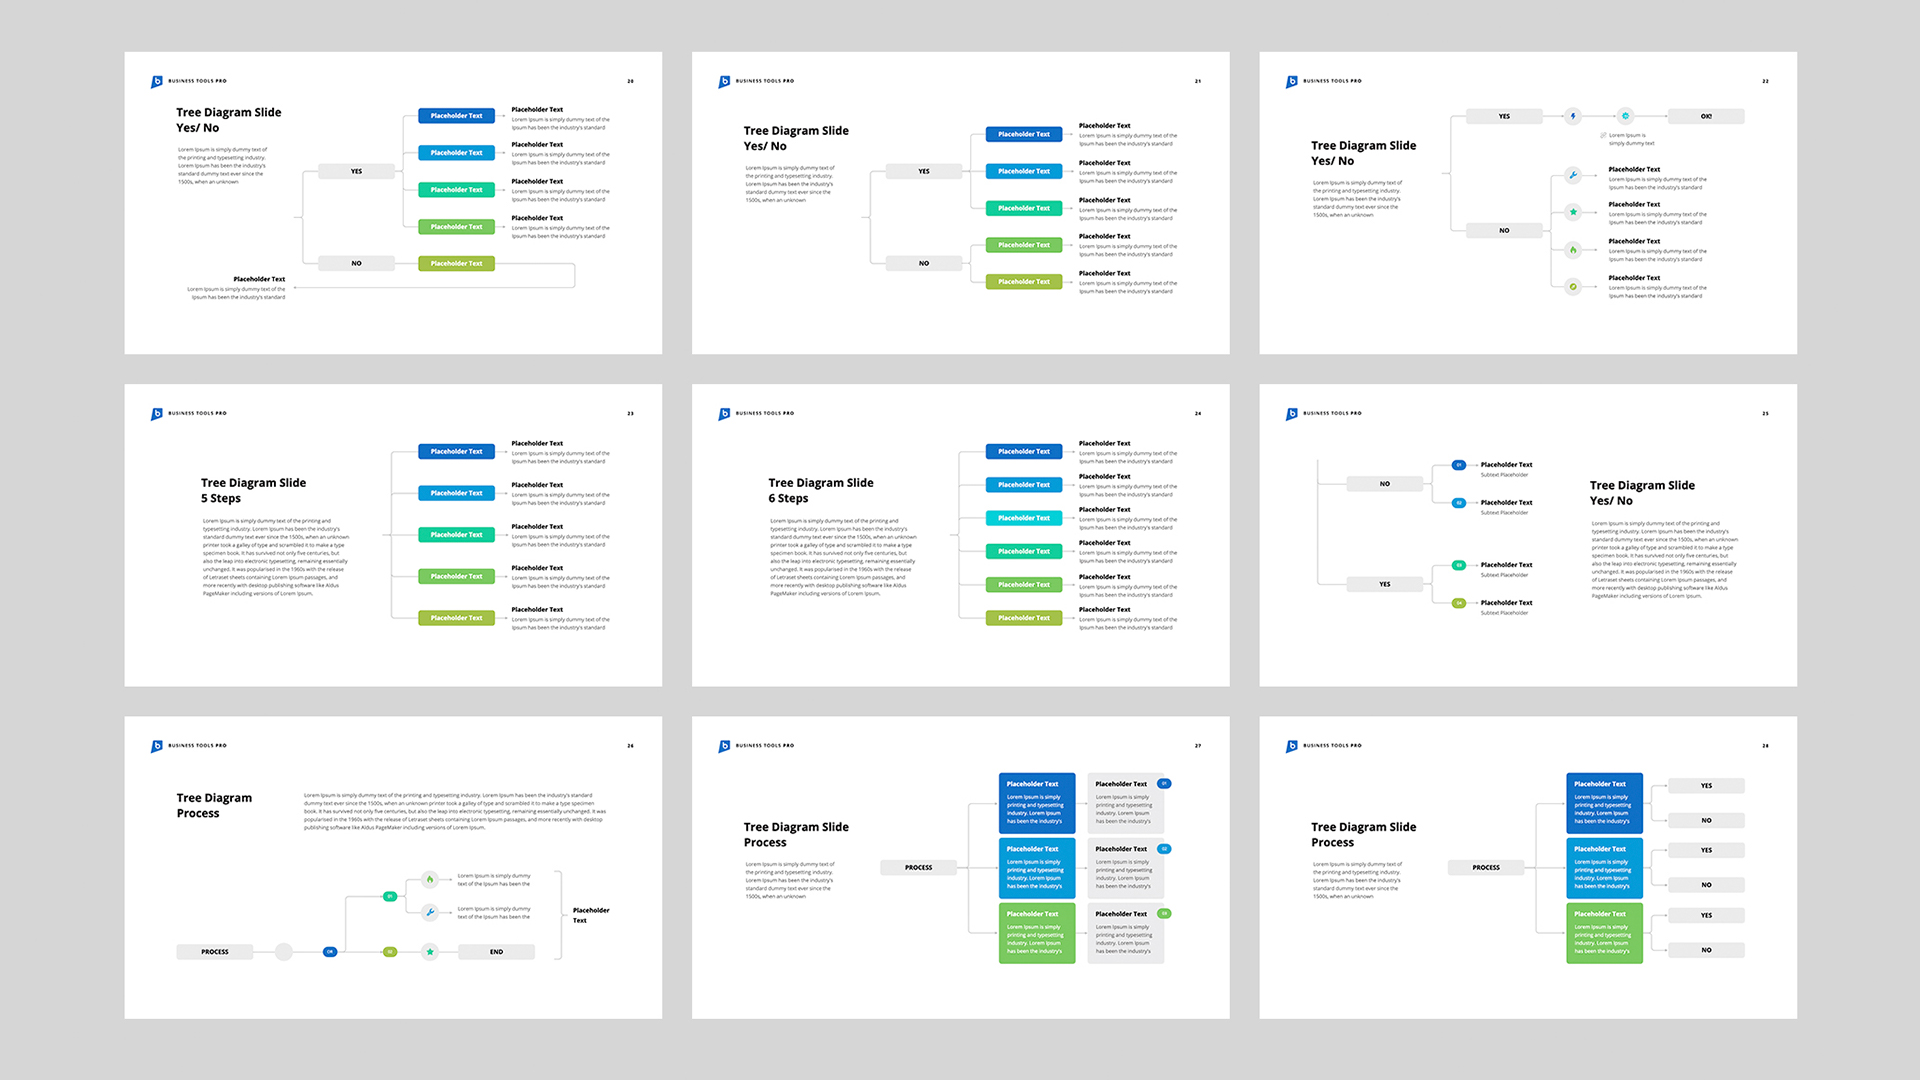 Tree Diagram Templates for Google Slides - Download Now!